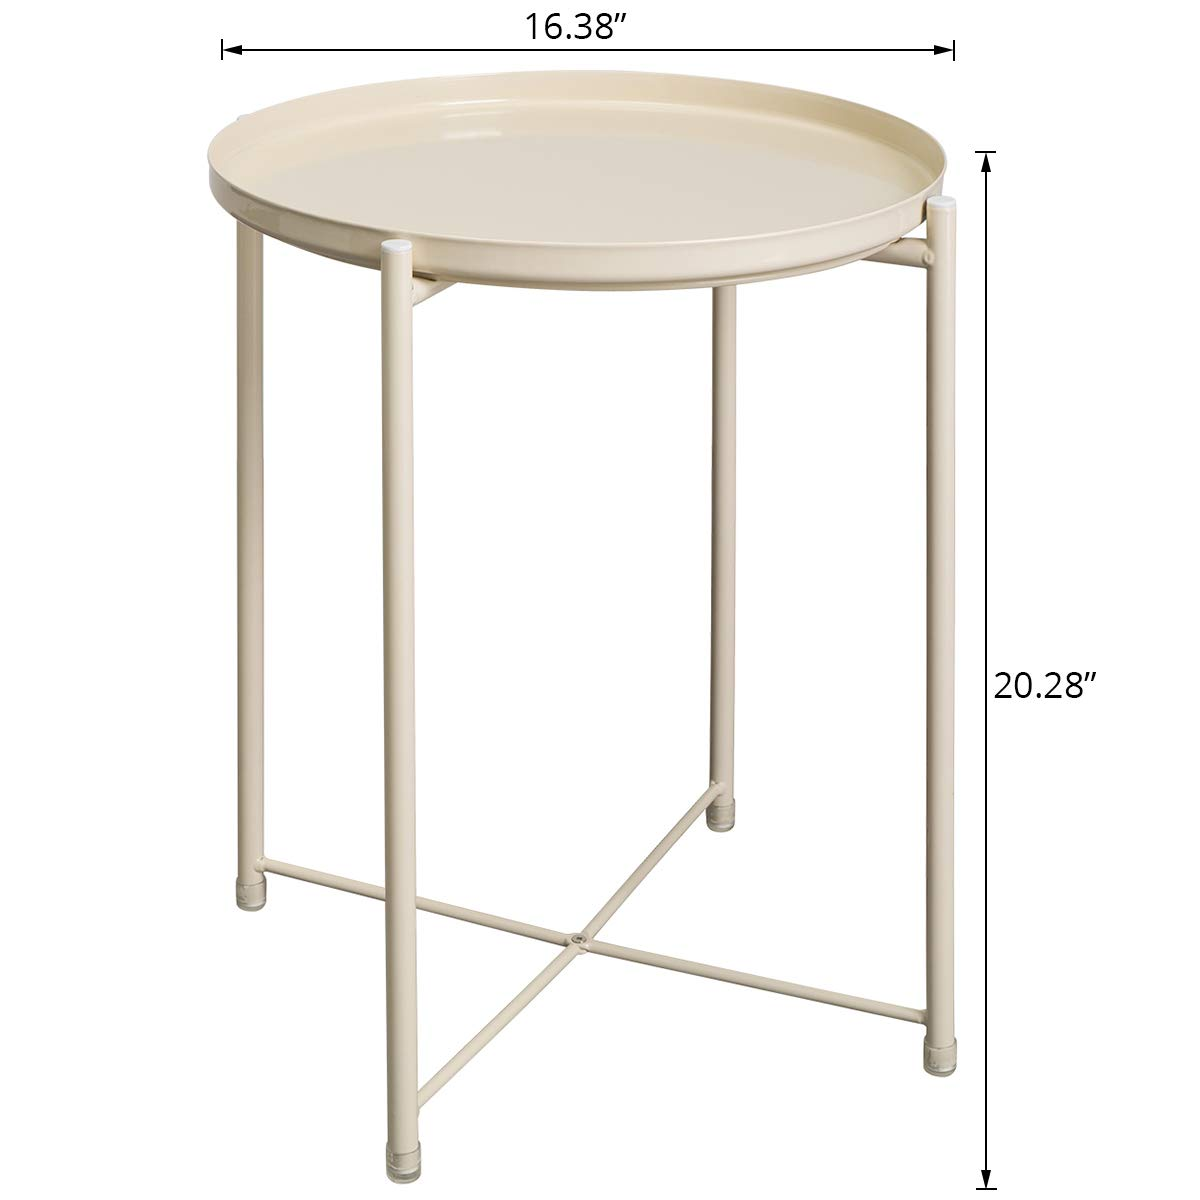 hollyhome folding tray metal end table sofa small bdl accent round side tables anti rust and waterproof outdoor indoor snack coffee half moon wall west elm coat rack chairs